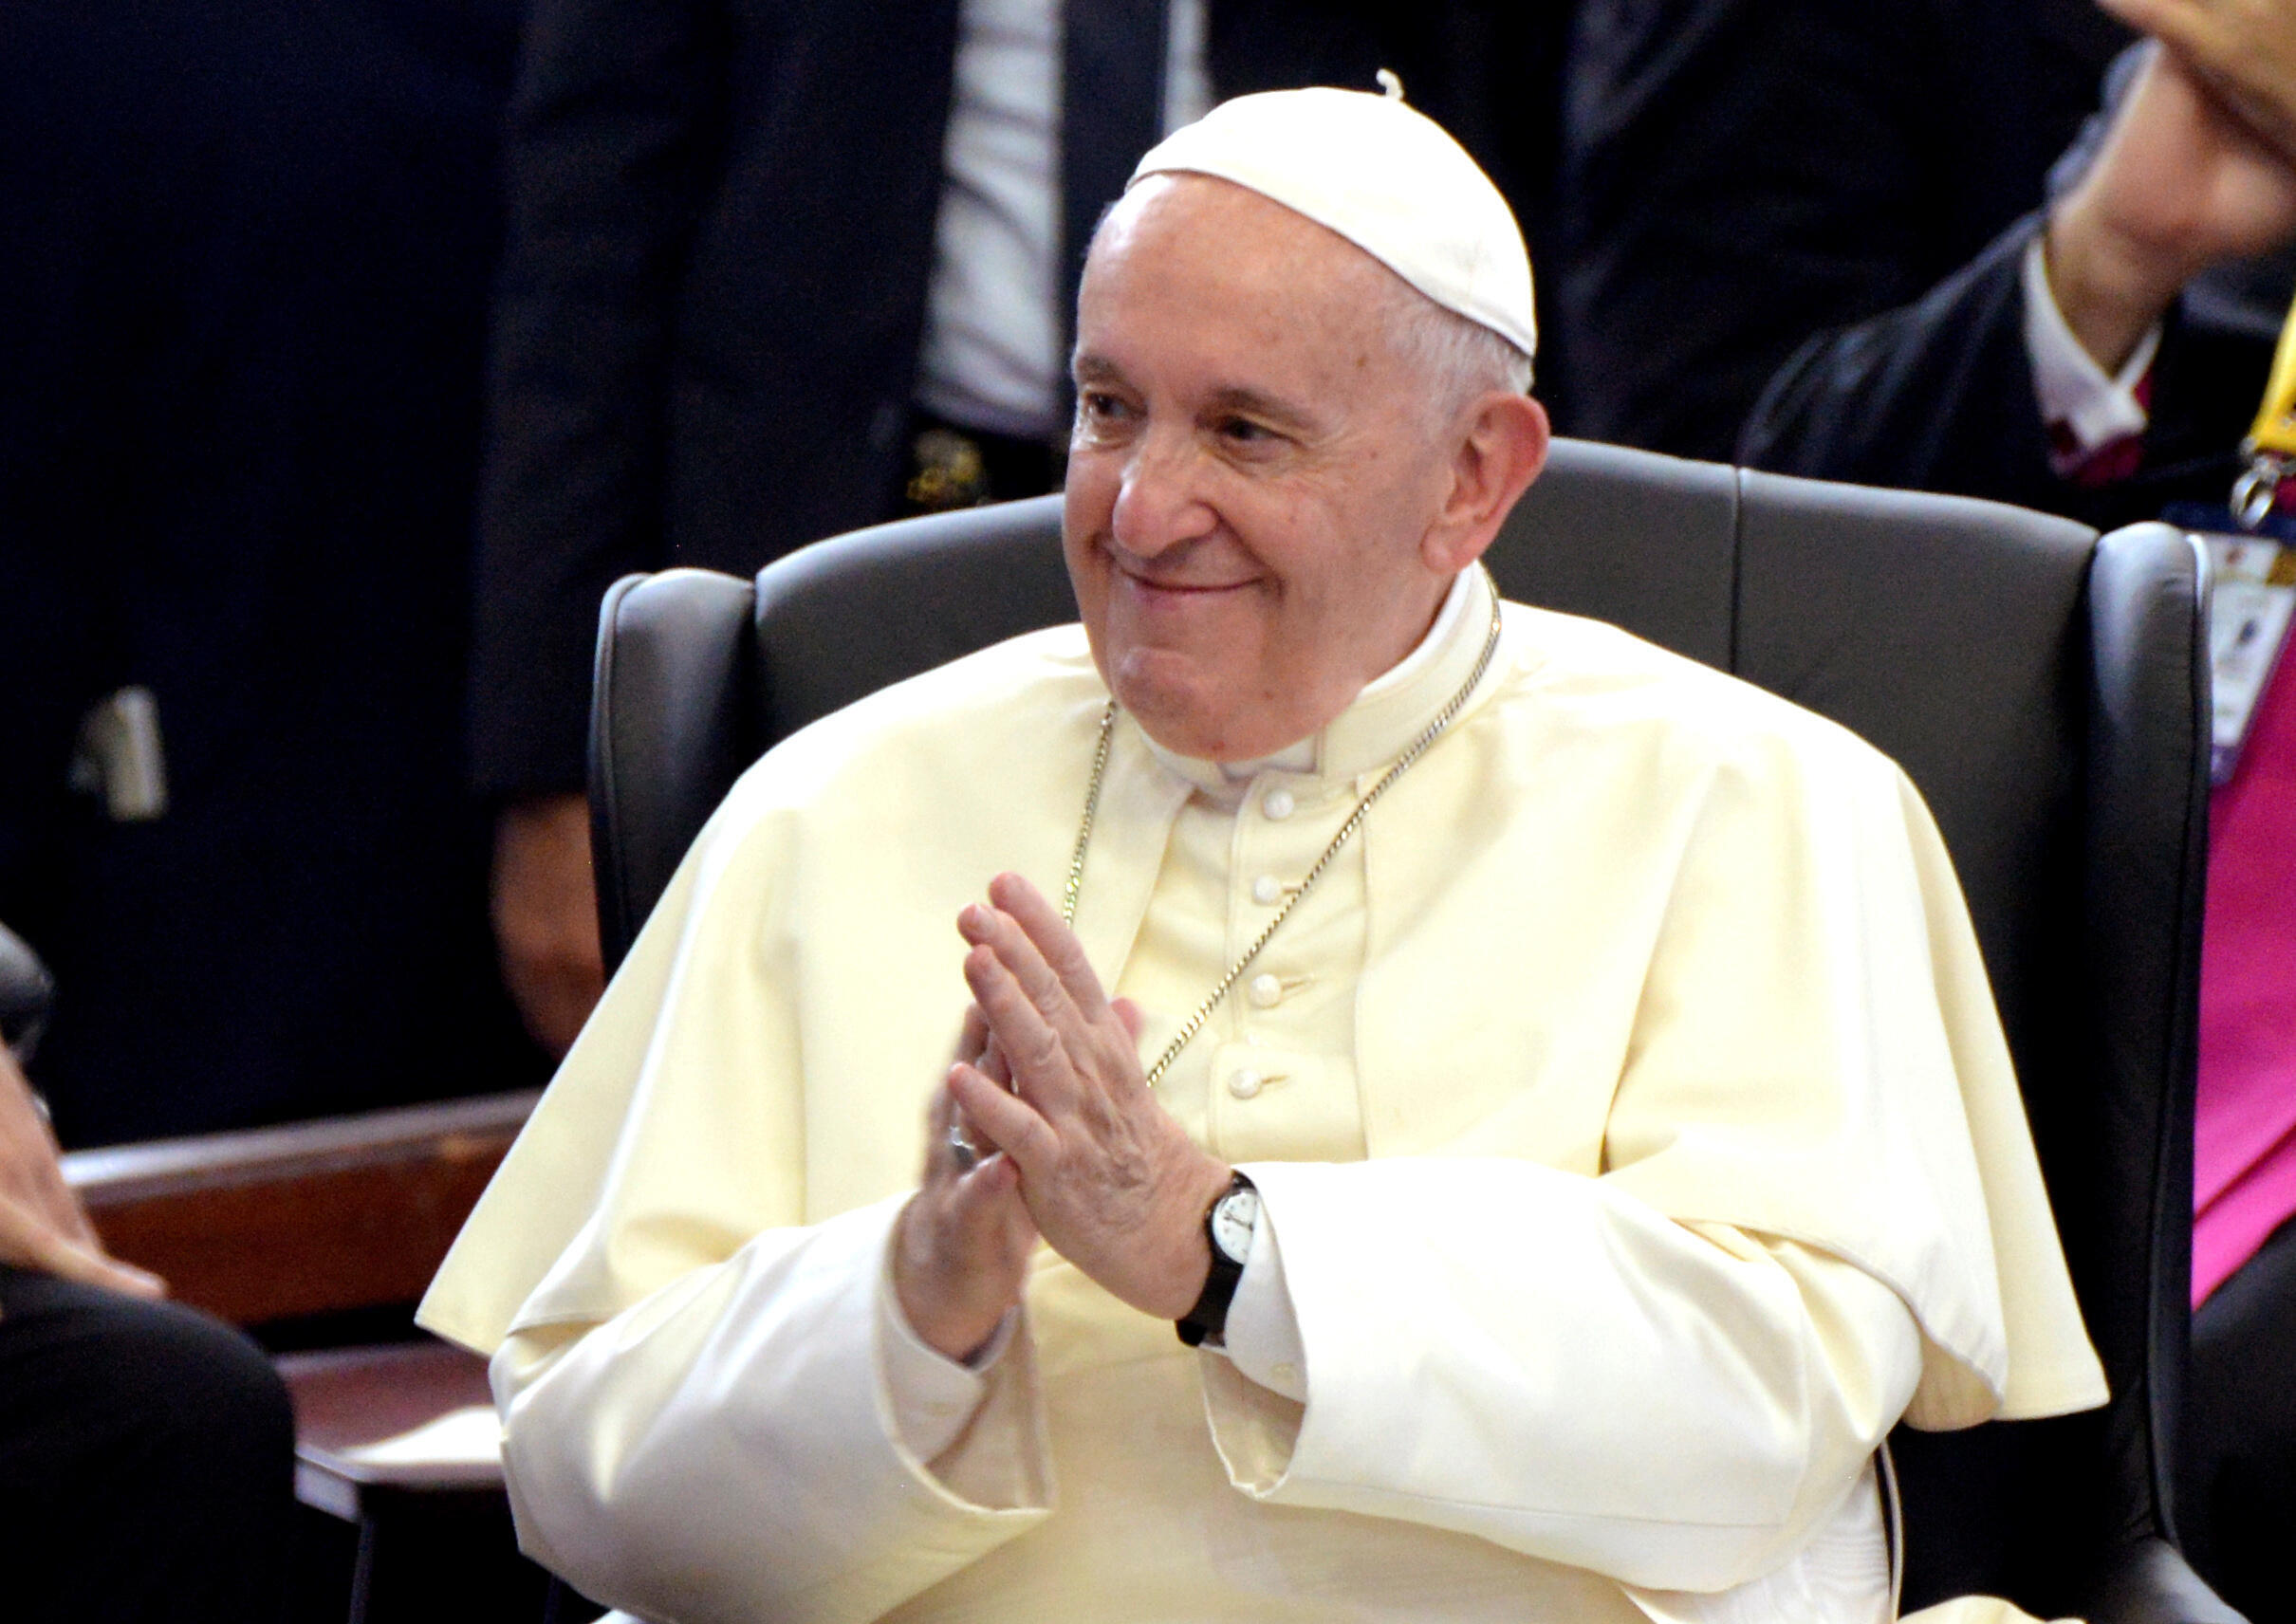 Pope Francis spoke to politicians during his visit to Mozambique.